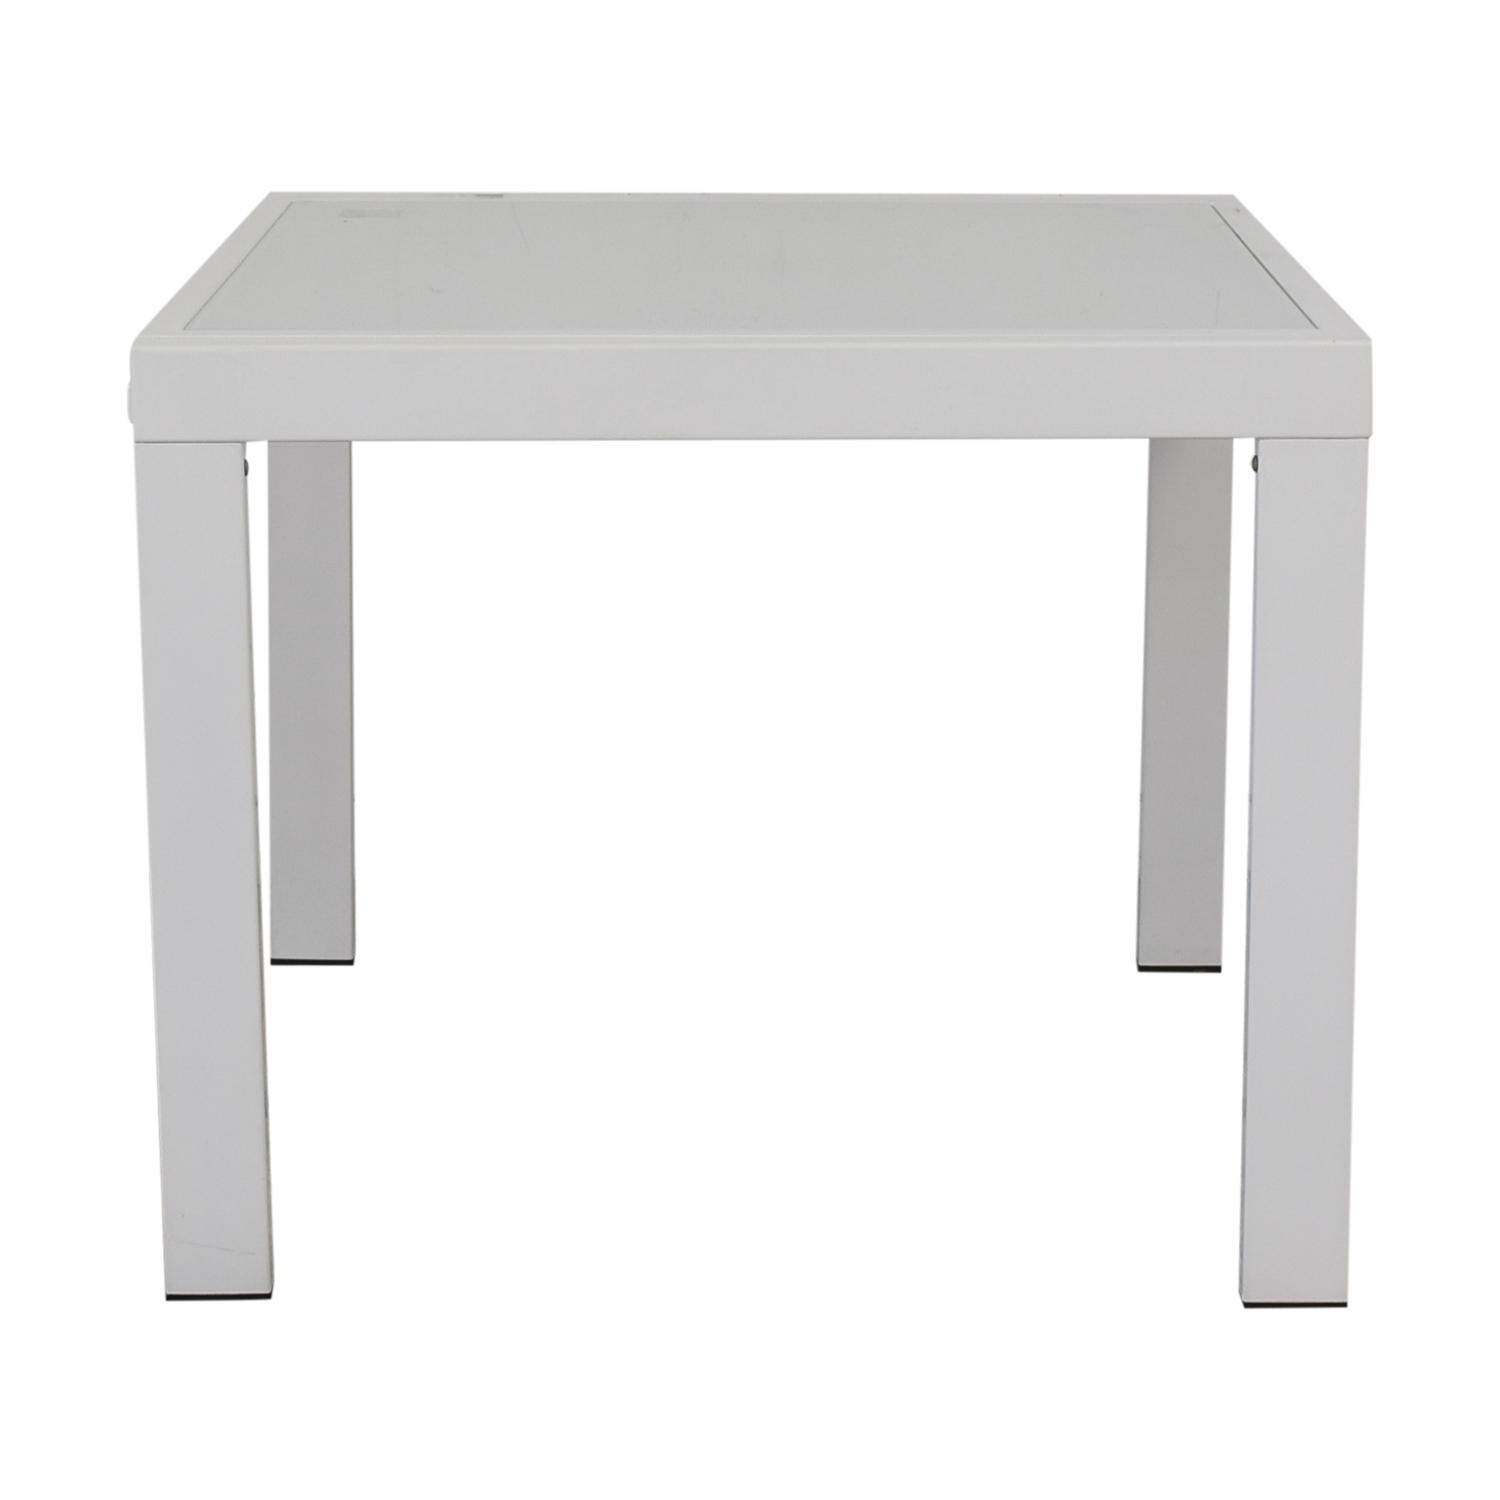 Effezeta Duo Extending Table Effezeta